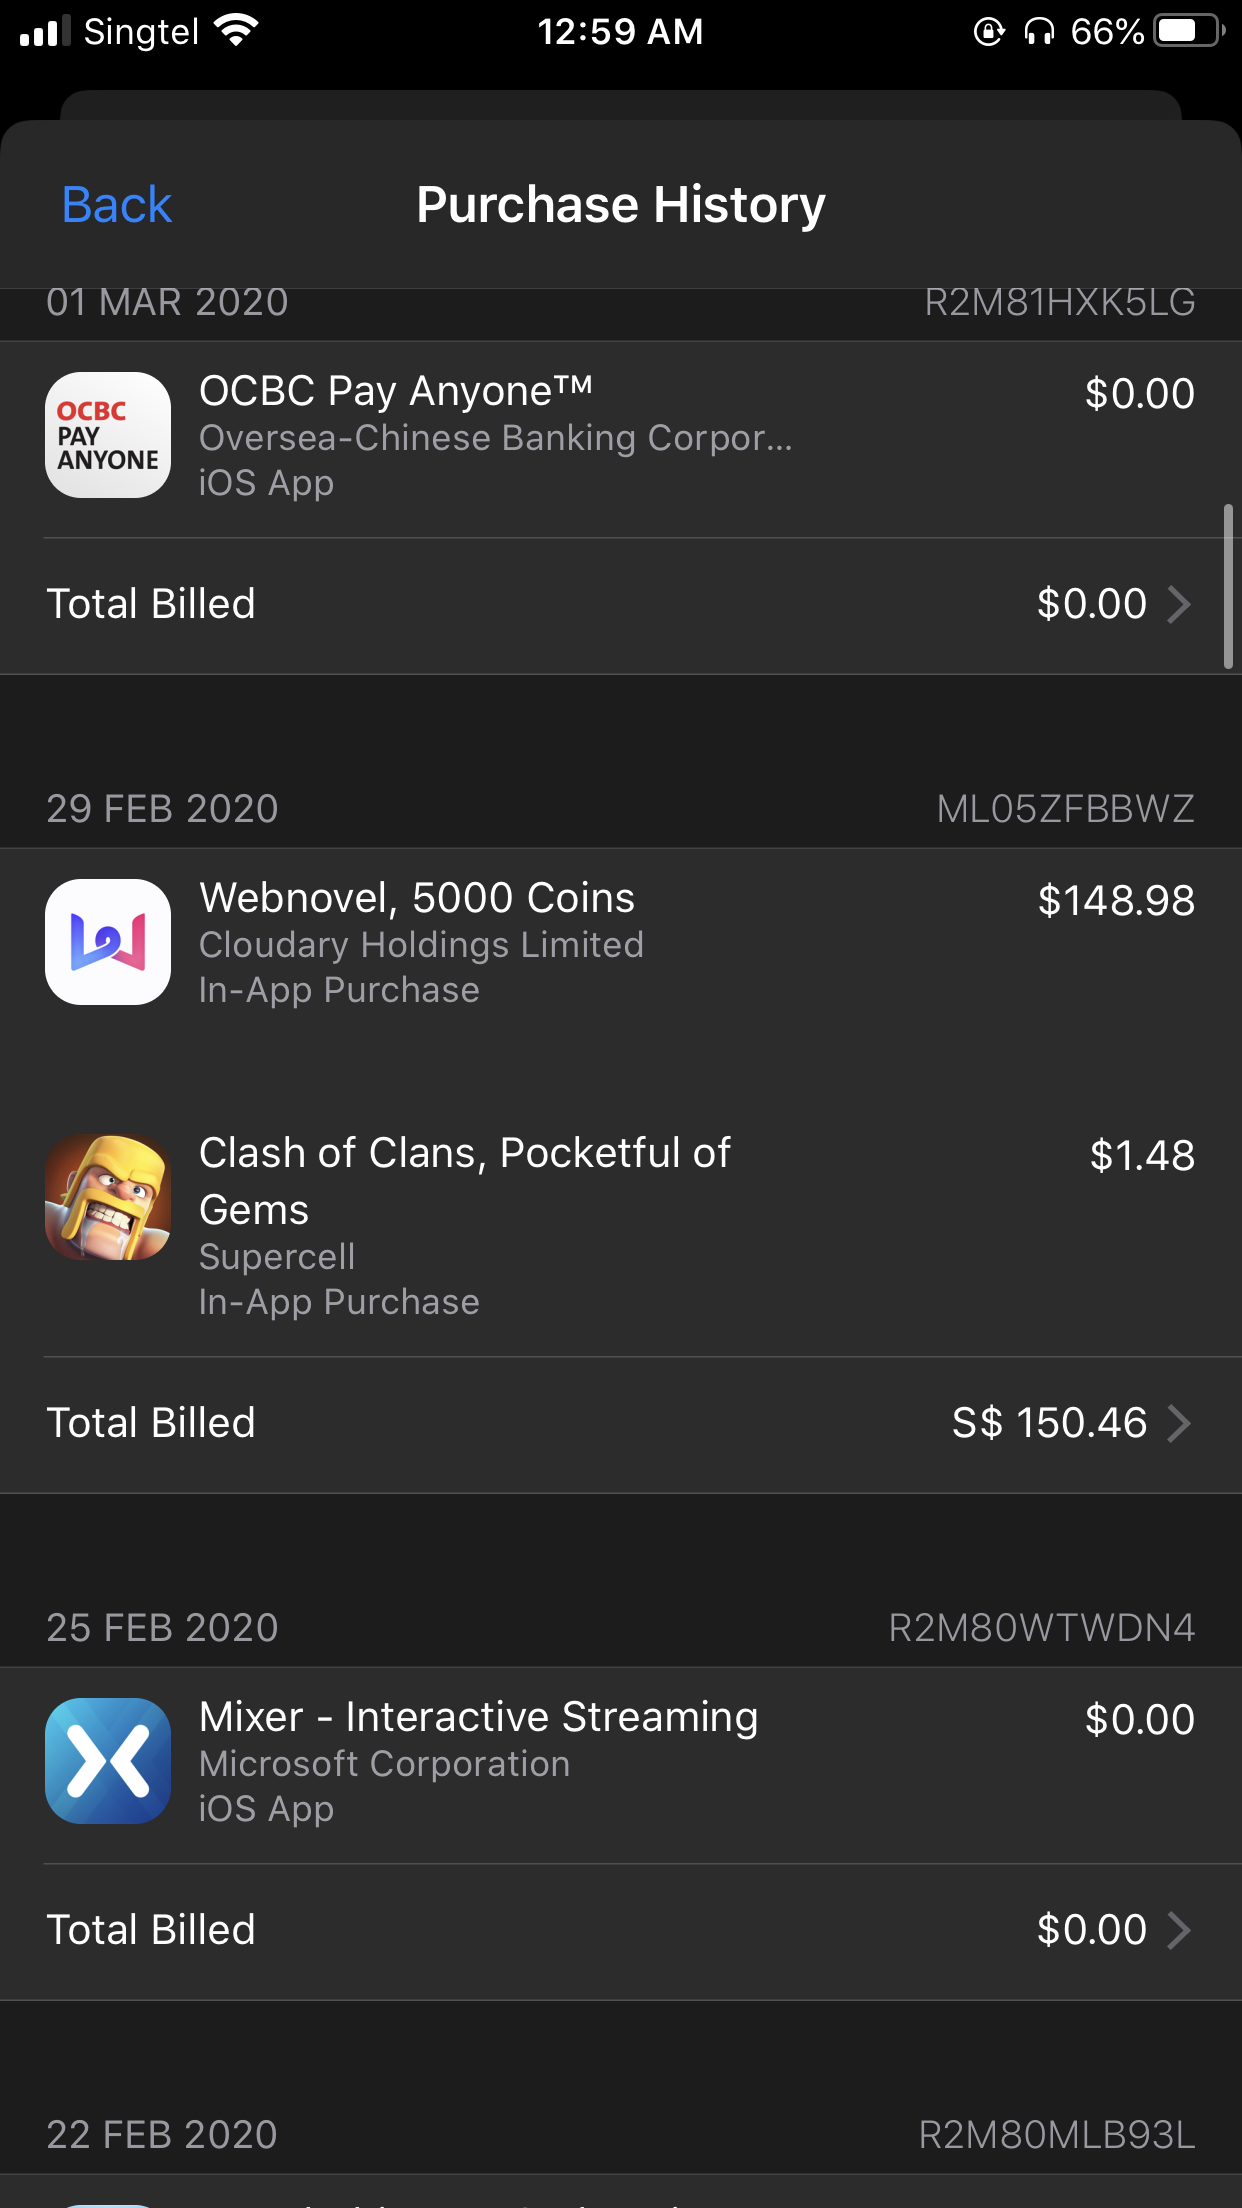 app store purchase history